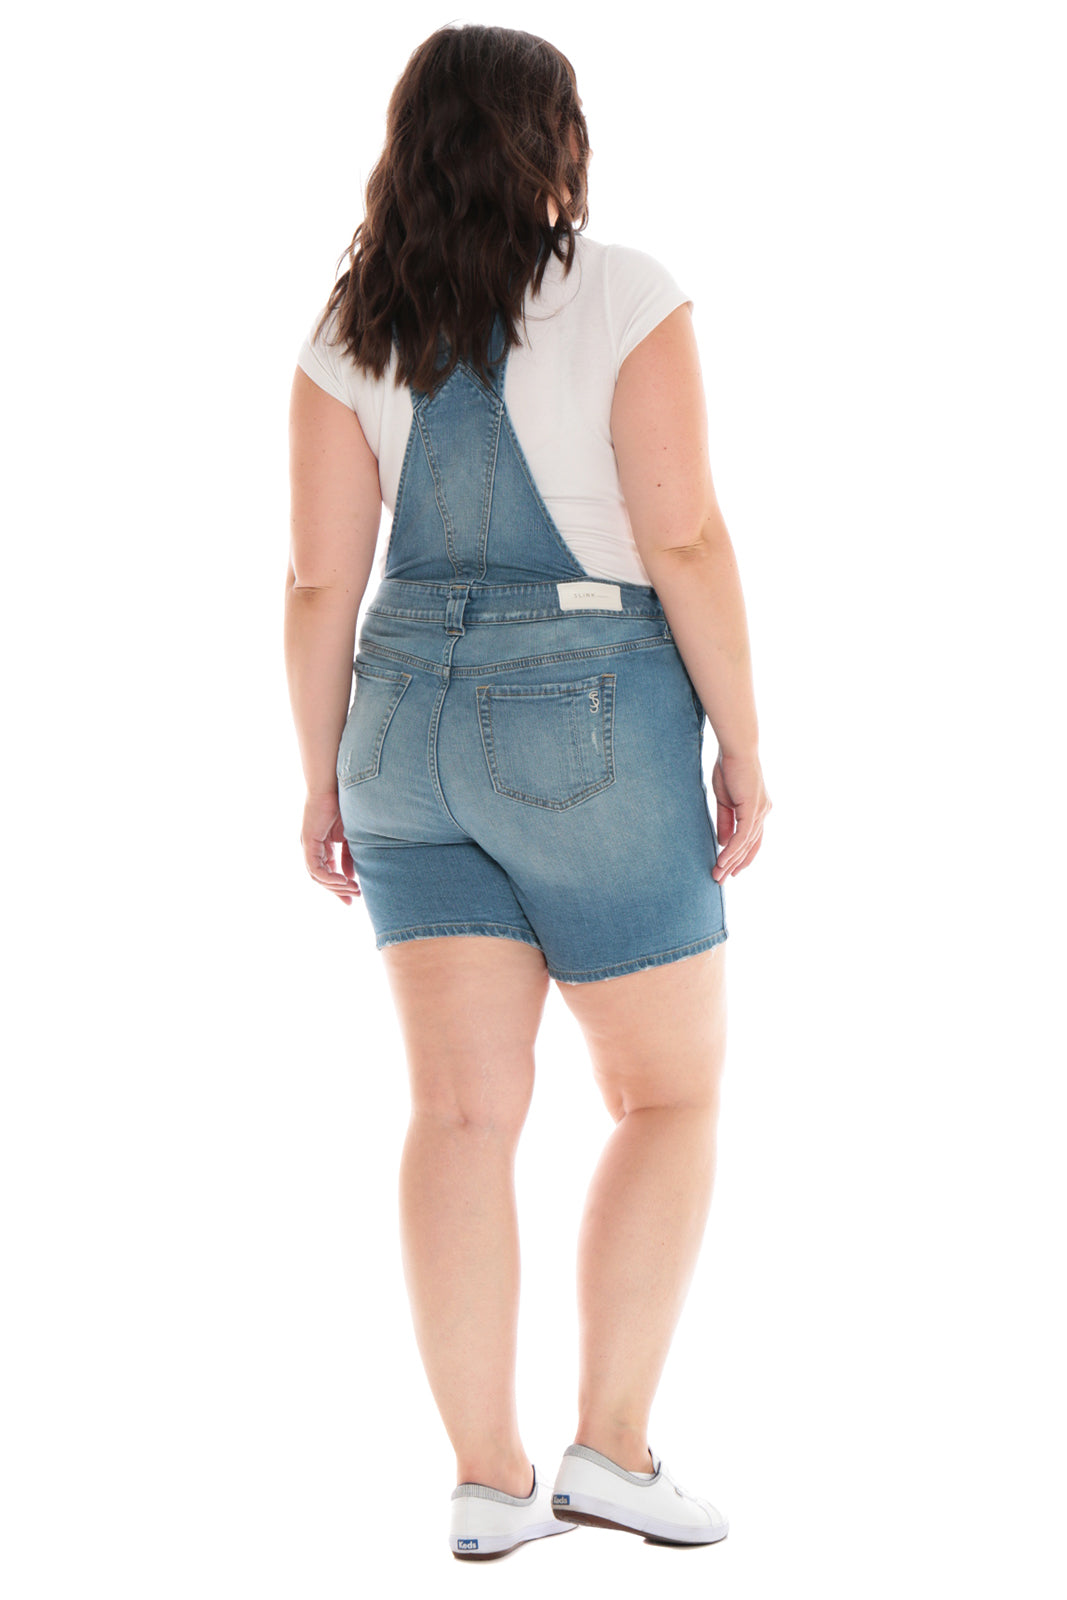 The Short Overall - RENA